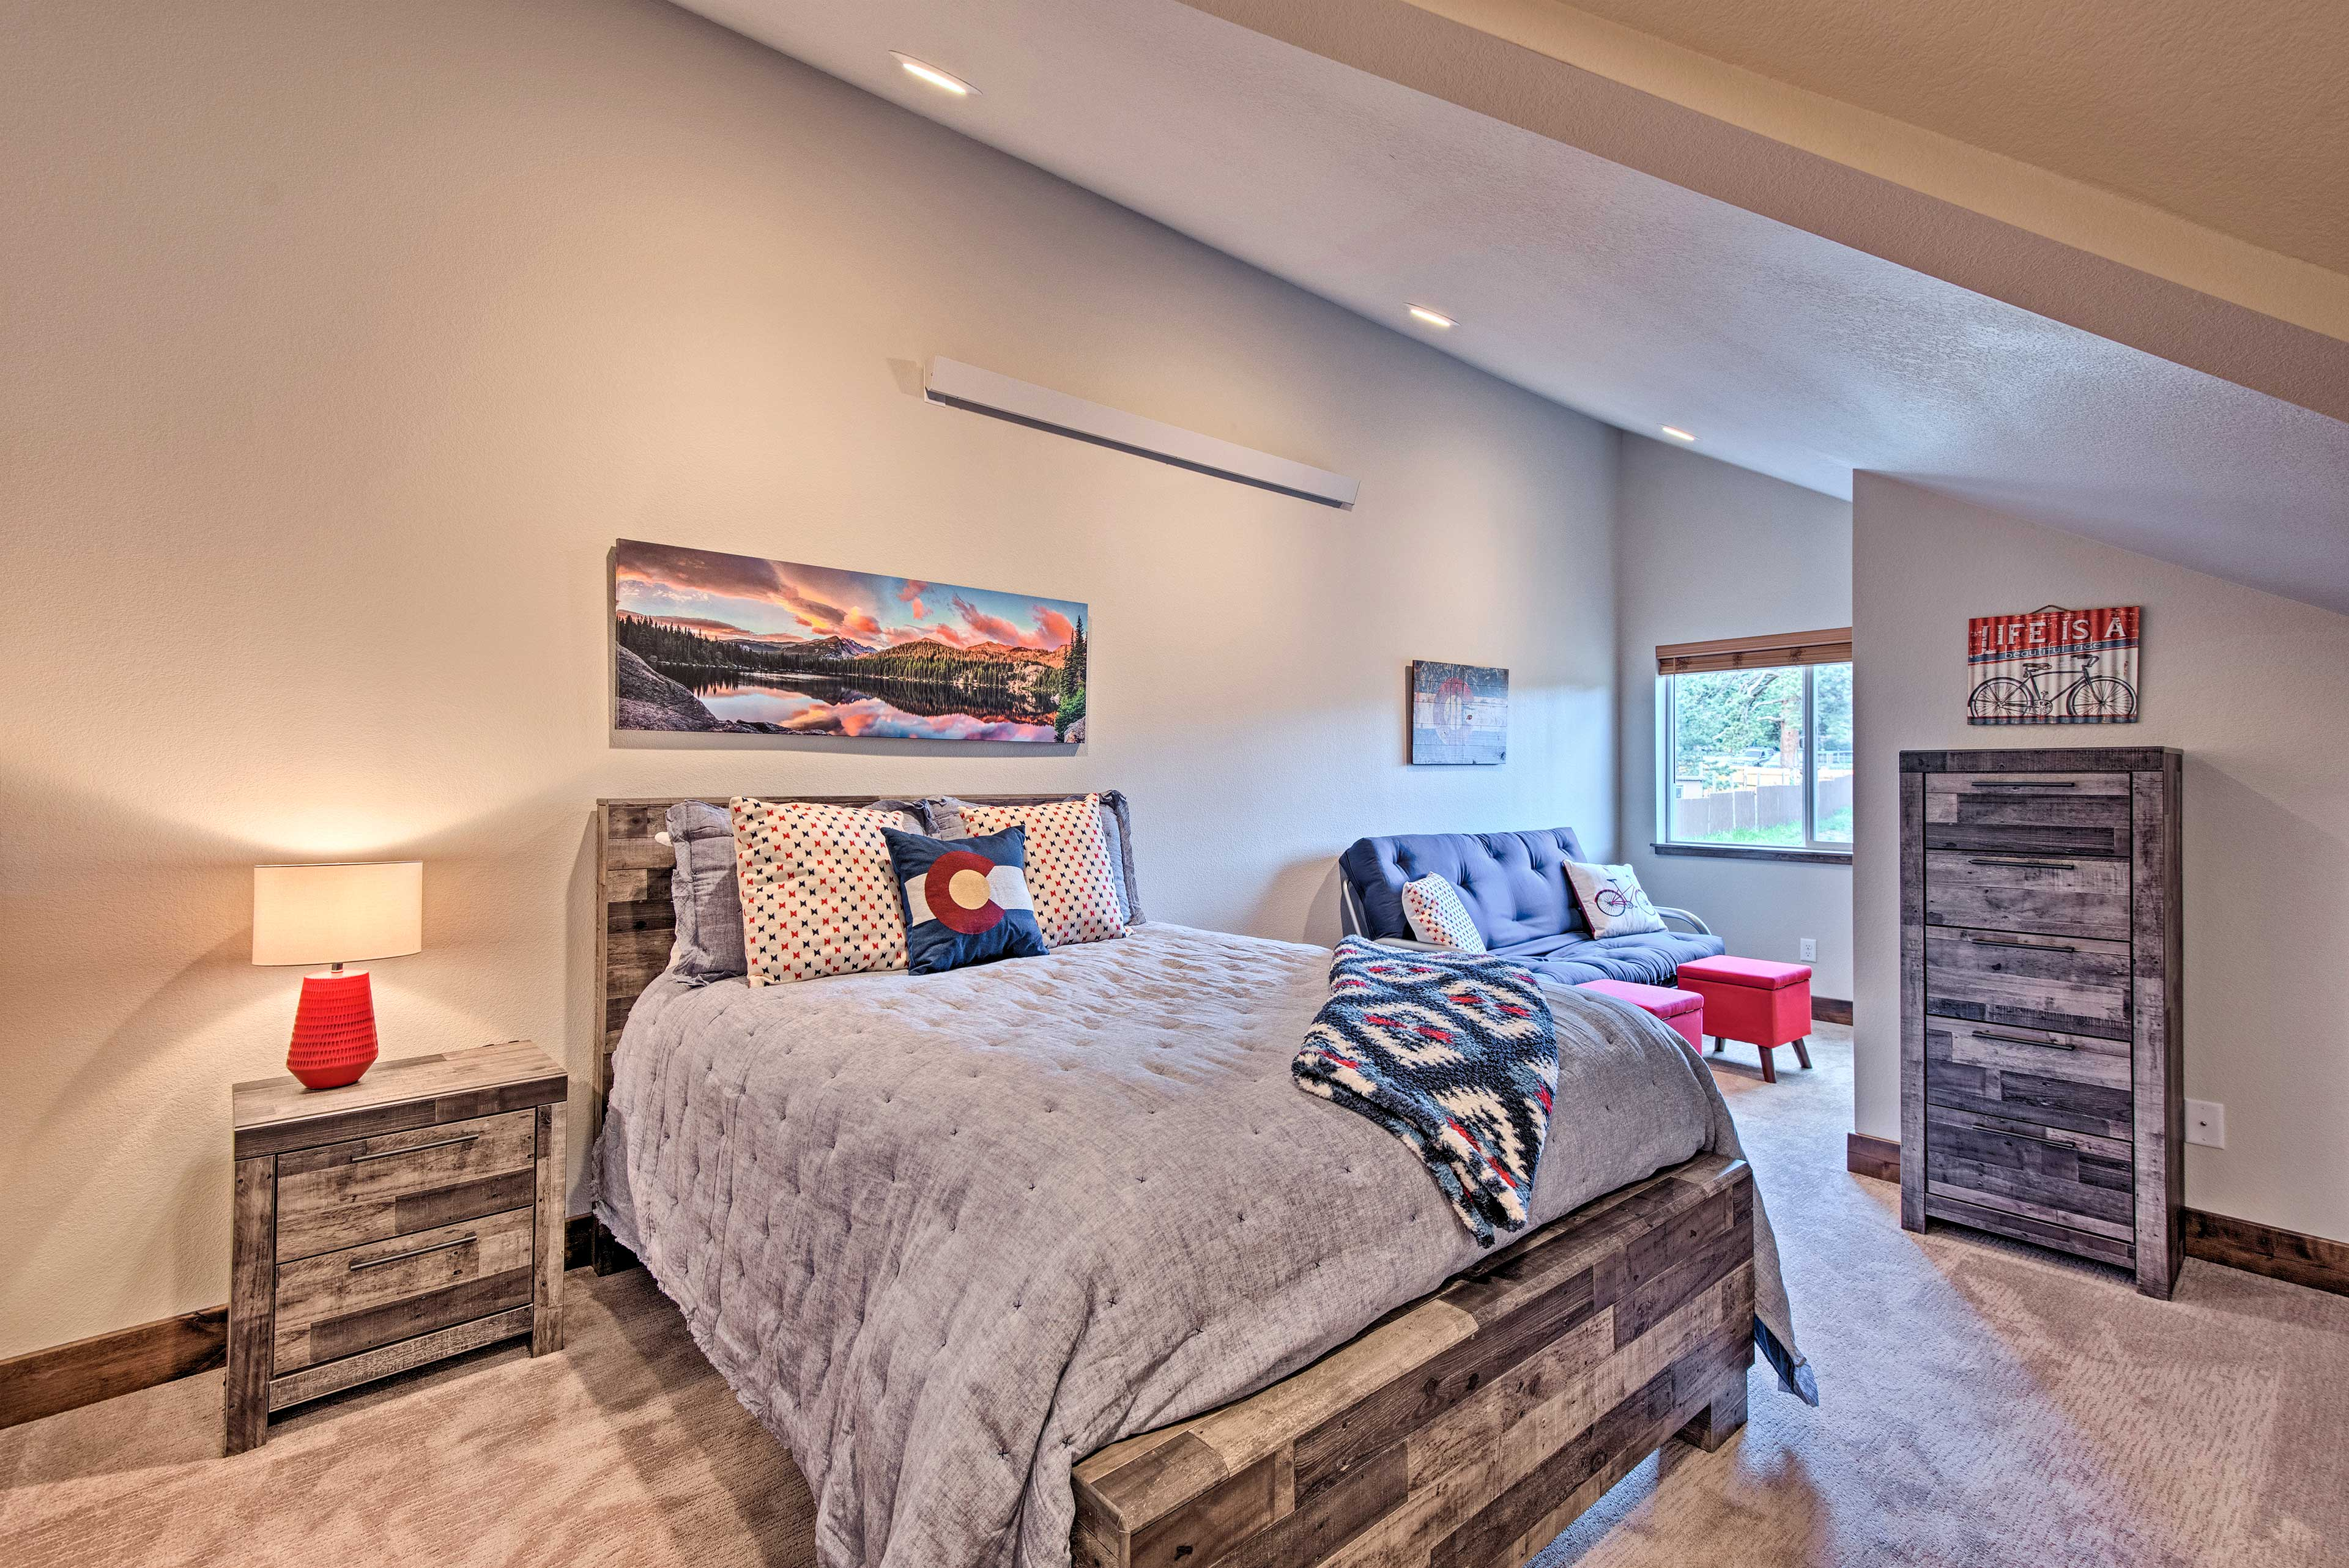 The second bedroom accommodates up to 4 travelers.